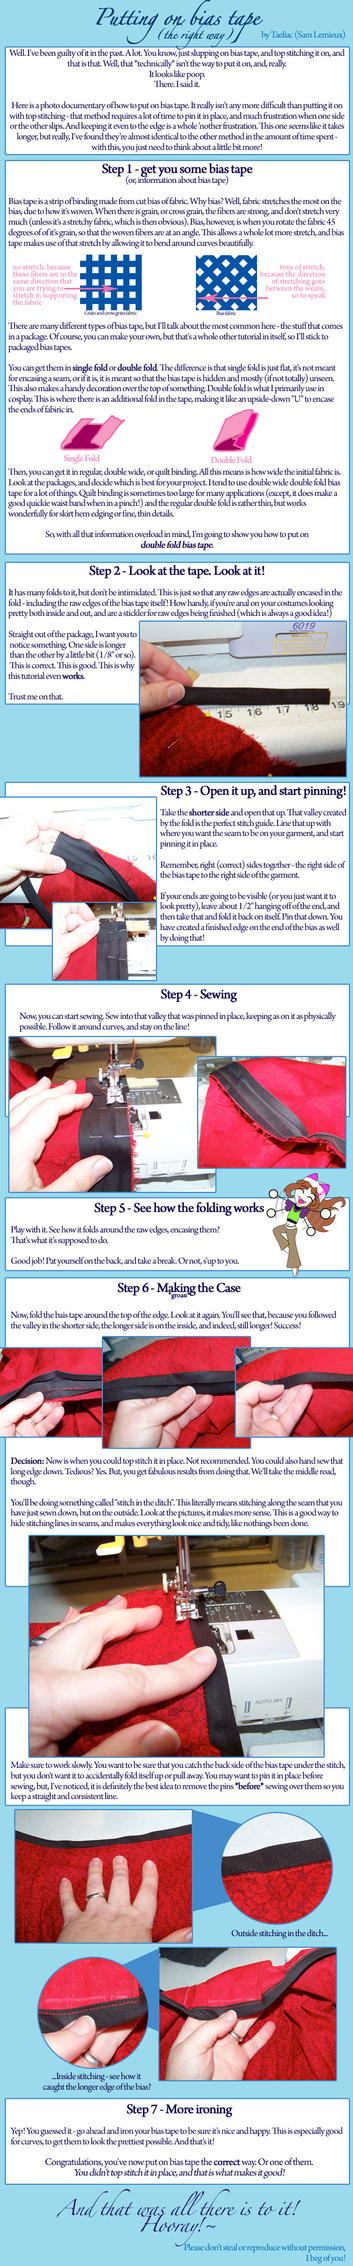 Tutorial: Putting on Bias Tape by taeliac